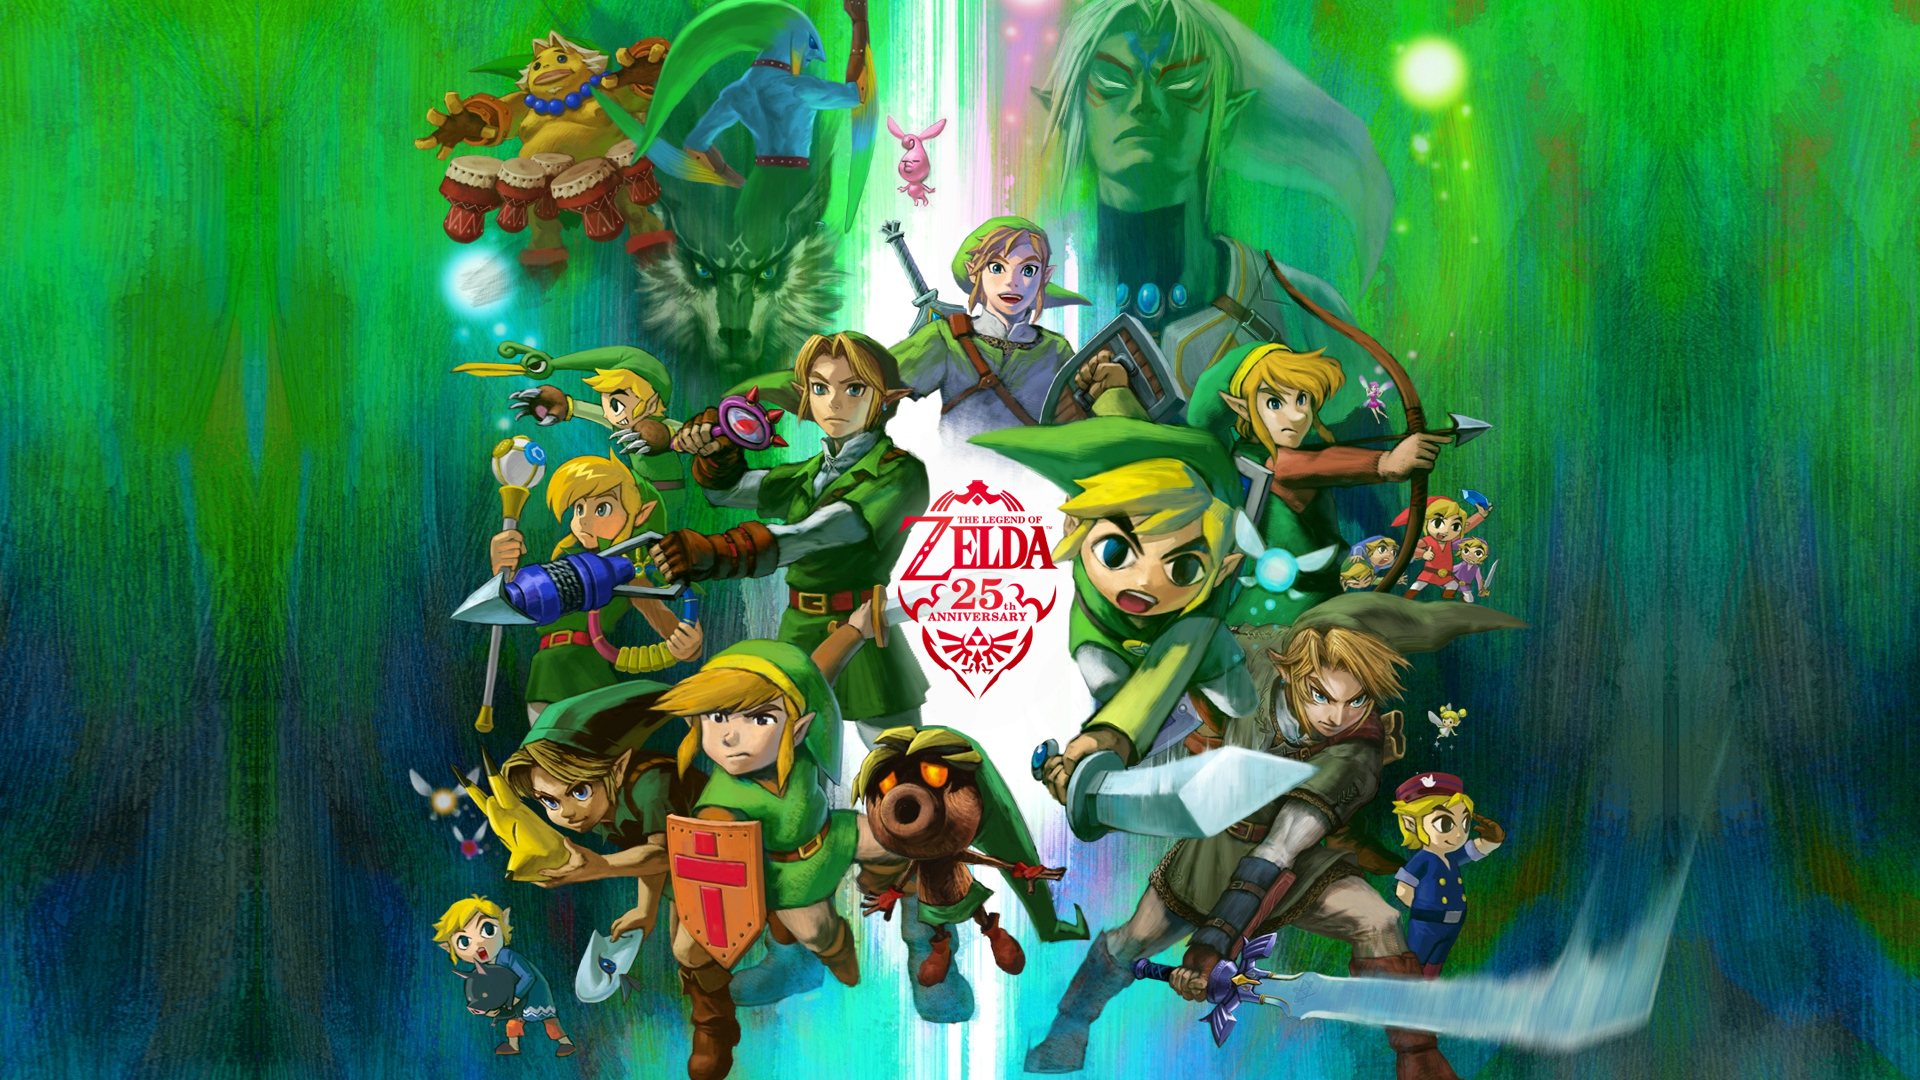 The Legend Of Zelda 25th Anniversary Wallpaper Ps4wallpaperscom